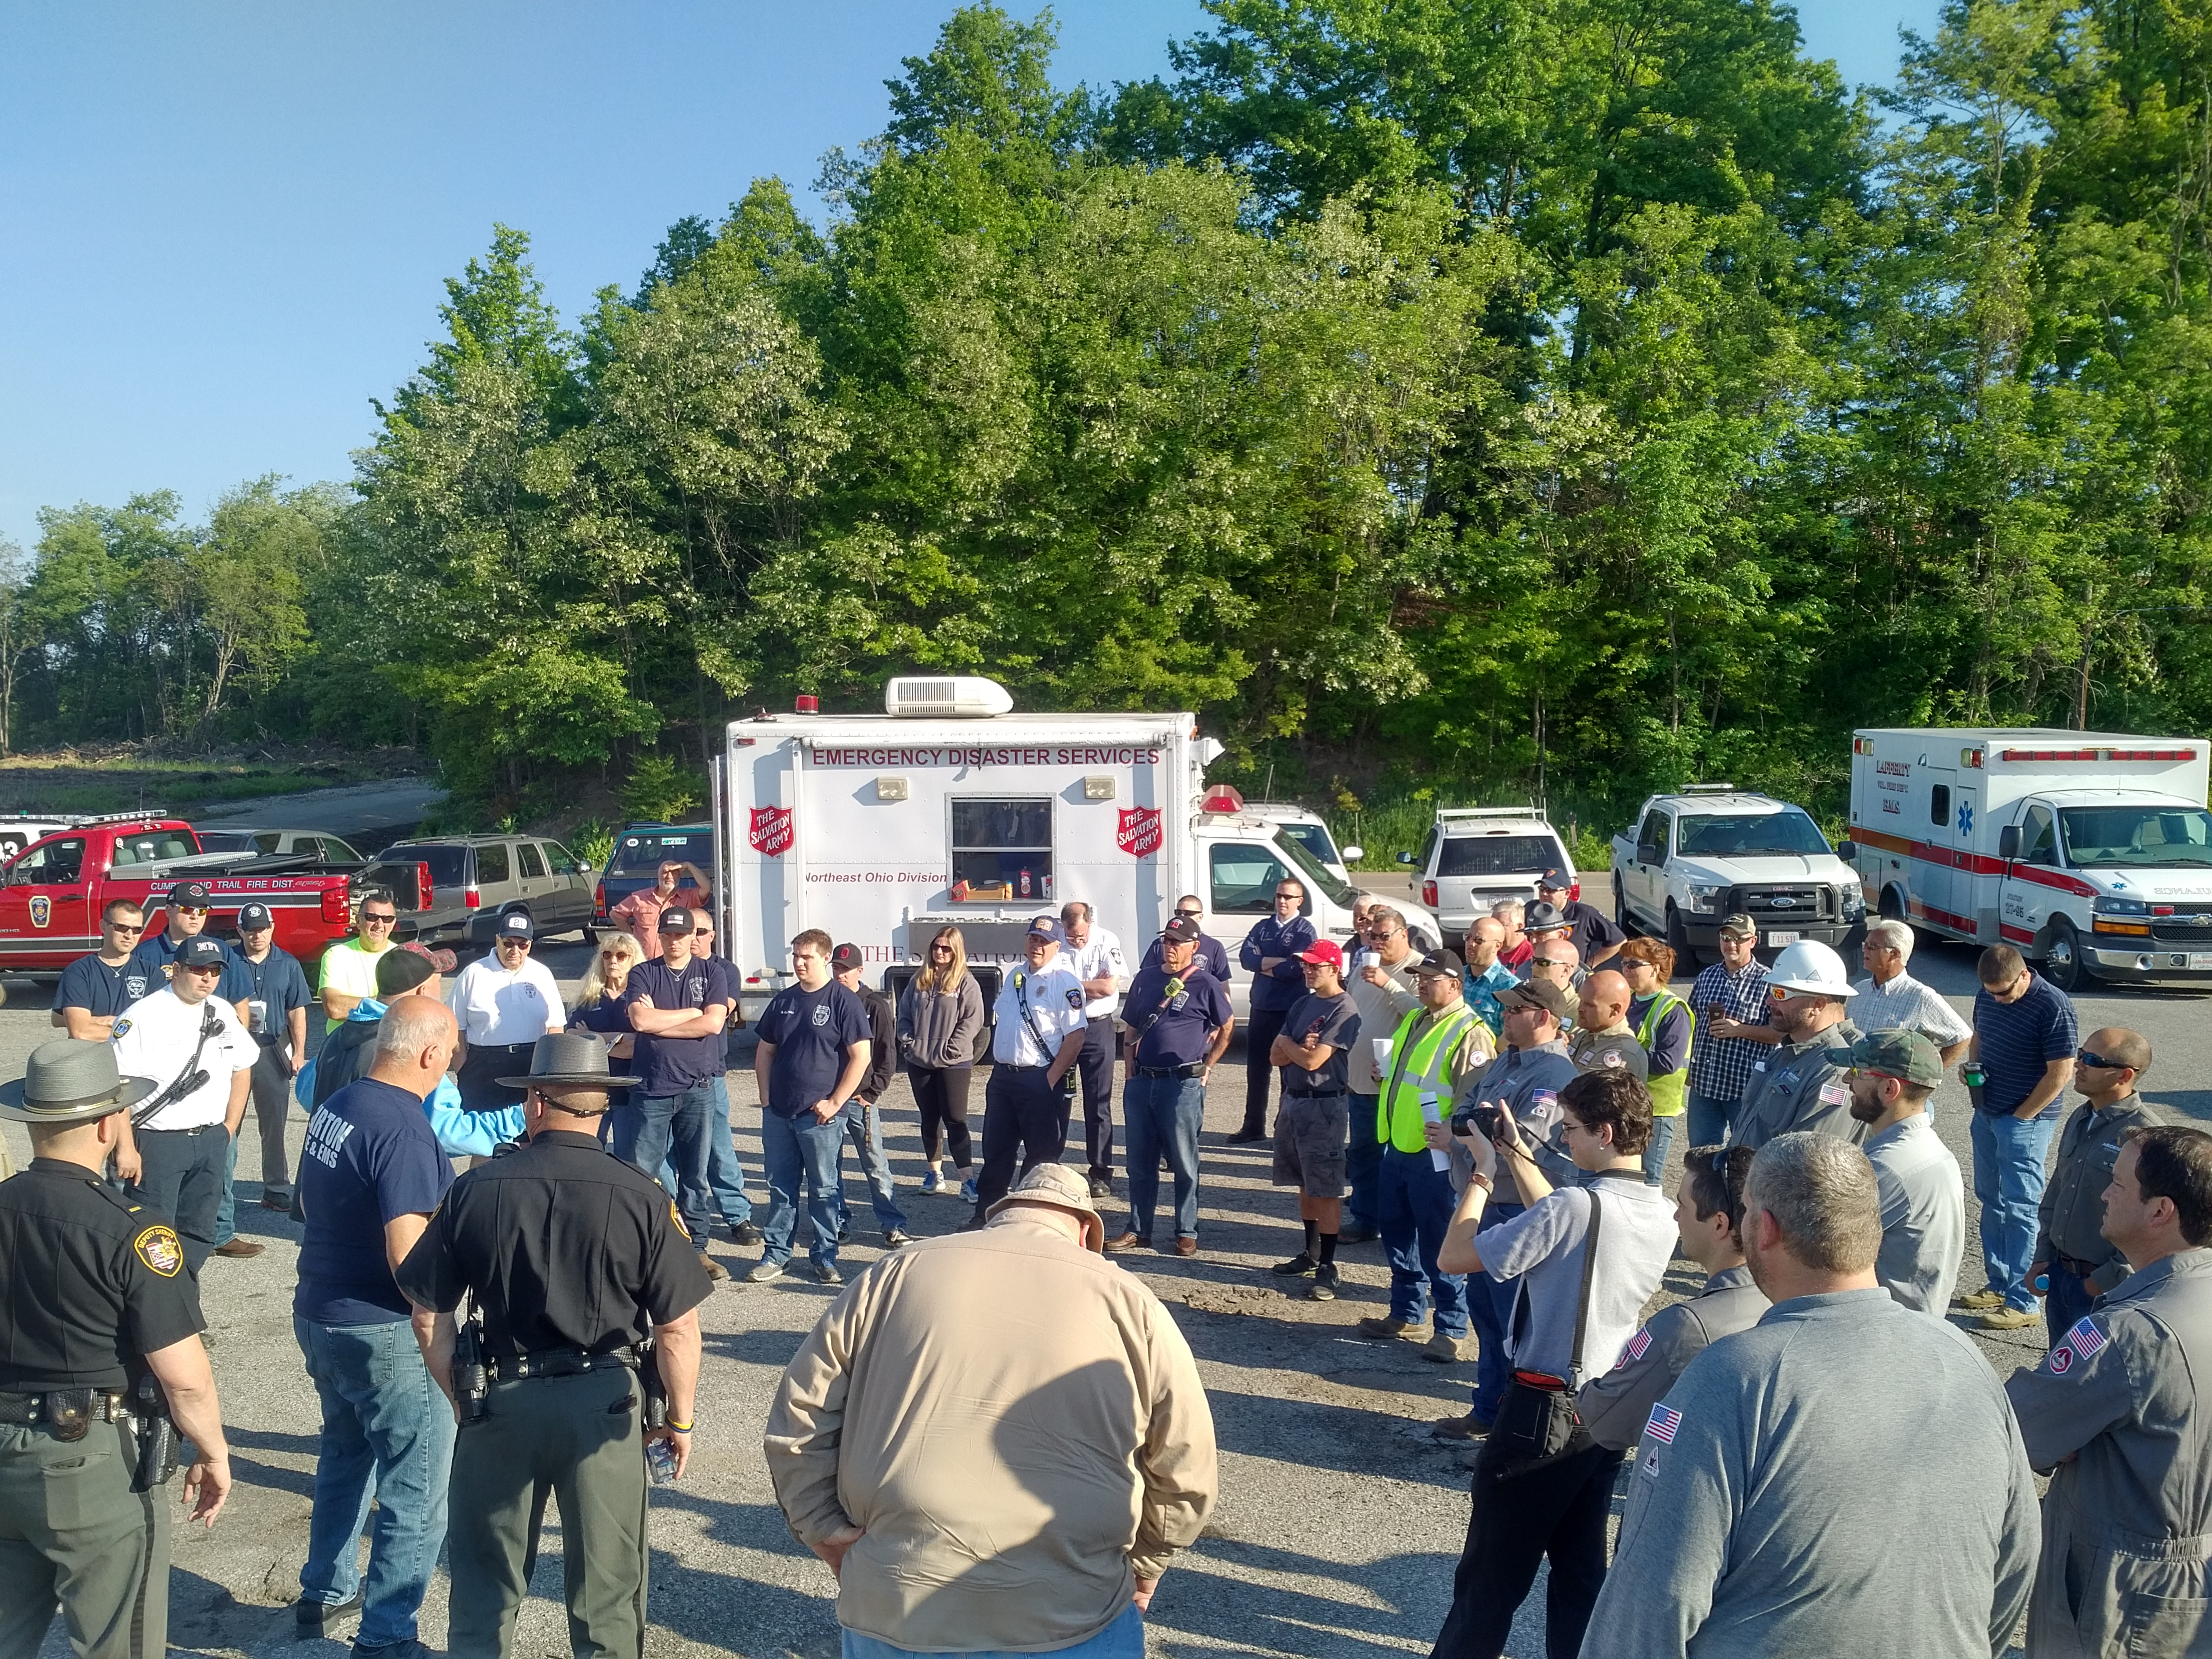 Ohio belmont county flushing -  Assisting Belmont County With This Training Exercise Not Only Enables Ascent To Be Better Partners With The Communities We Operate In But Also Gives Us